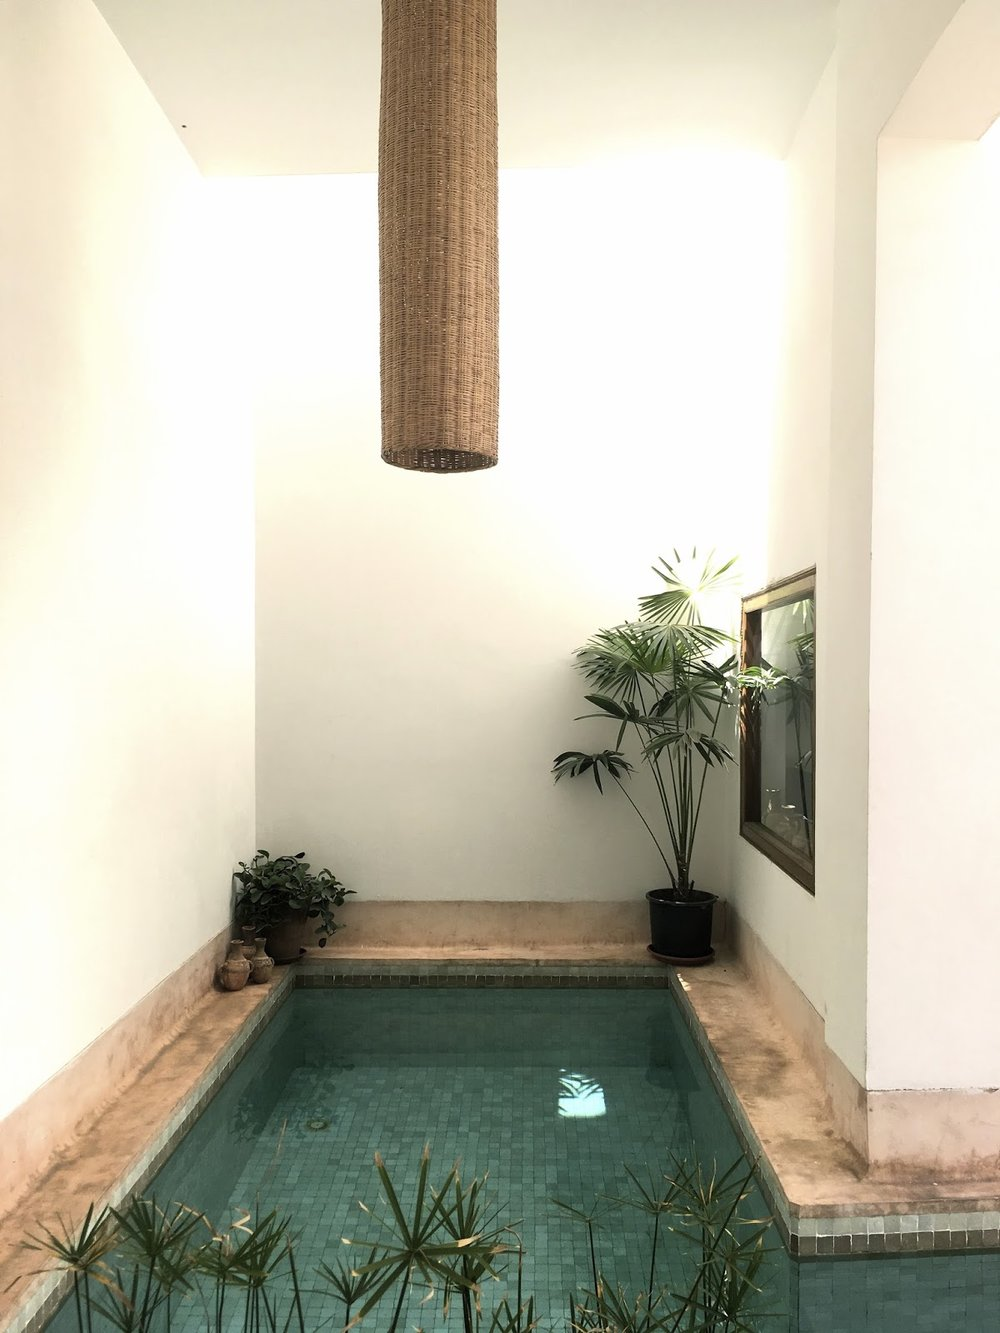 riad up, Marrakech, Medina, minimalism, patio, pool,urbanparadise